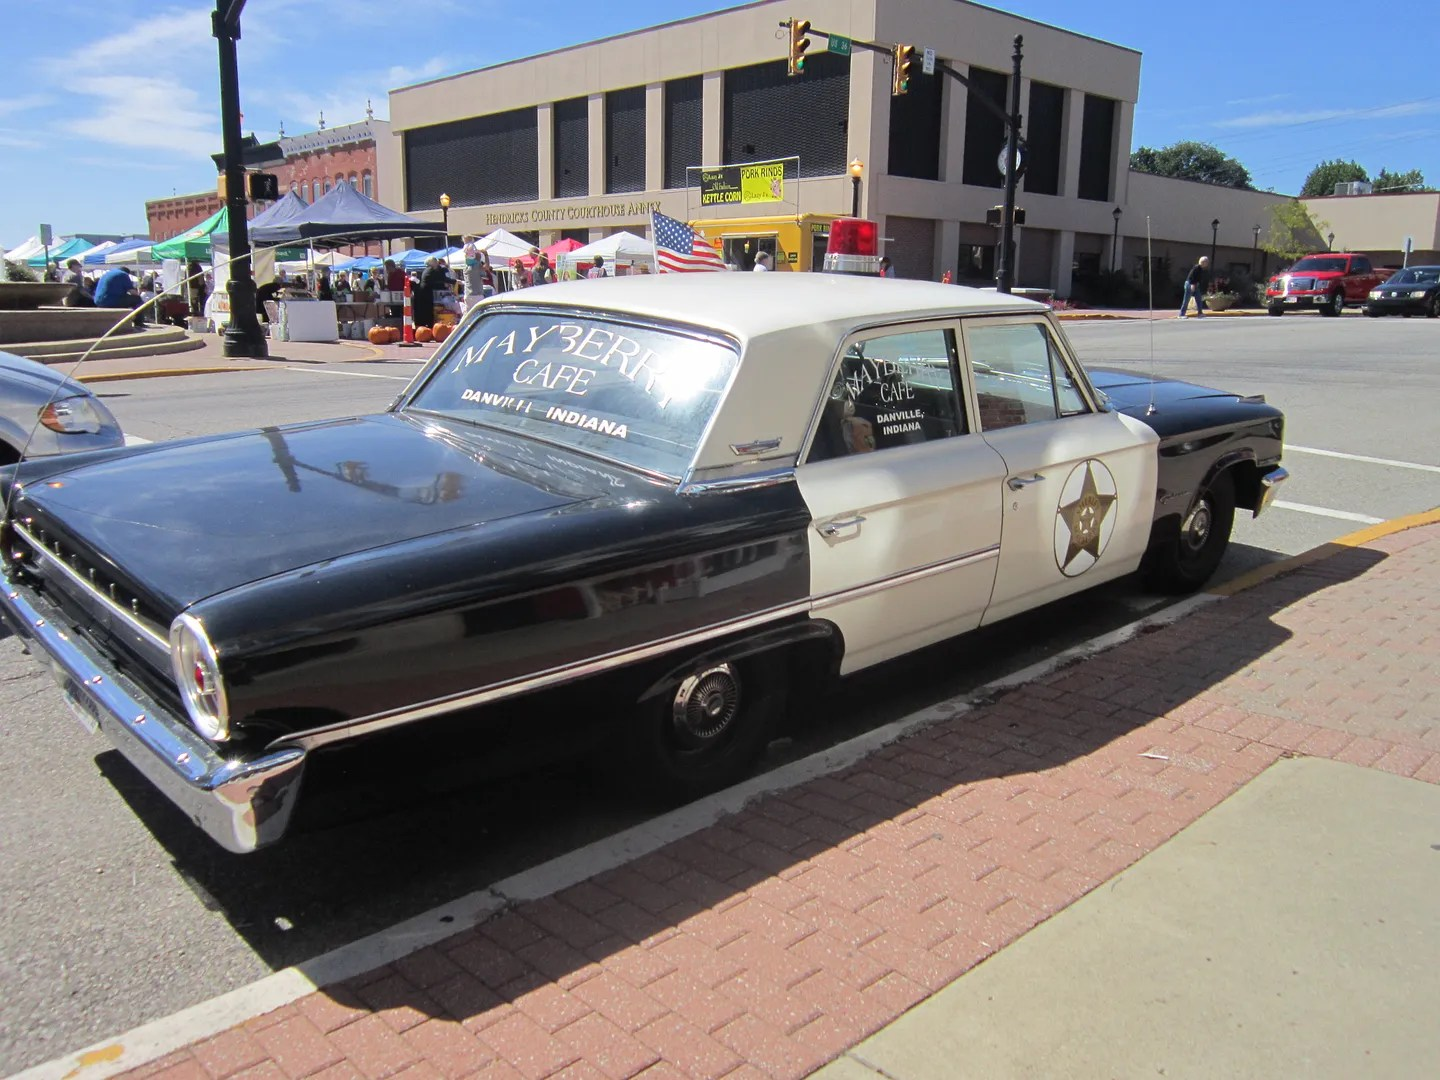 Sheriffy Andy's car, Mayberry Cafe, Danville, Indiana